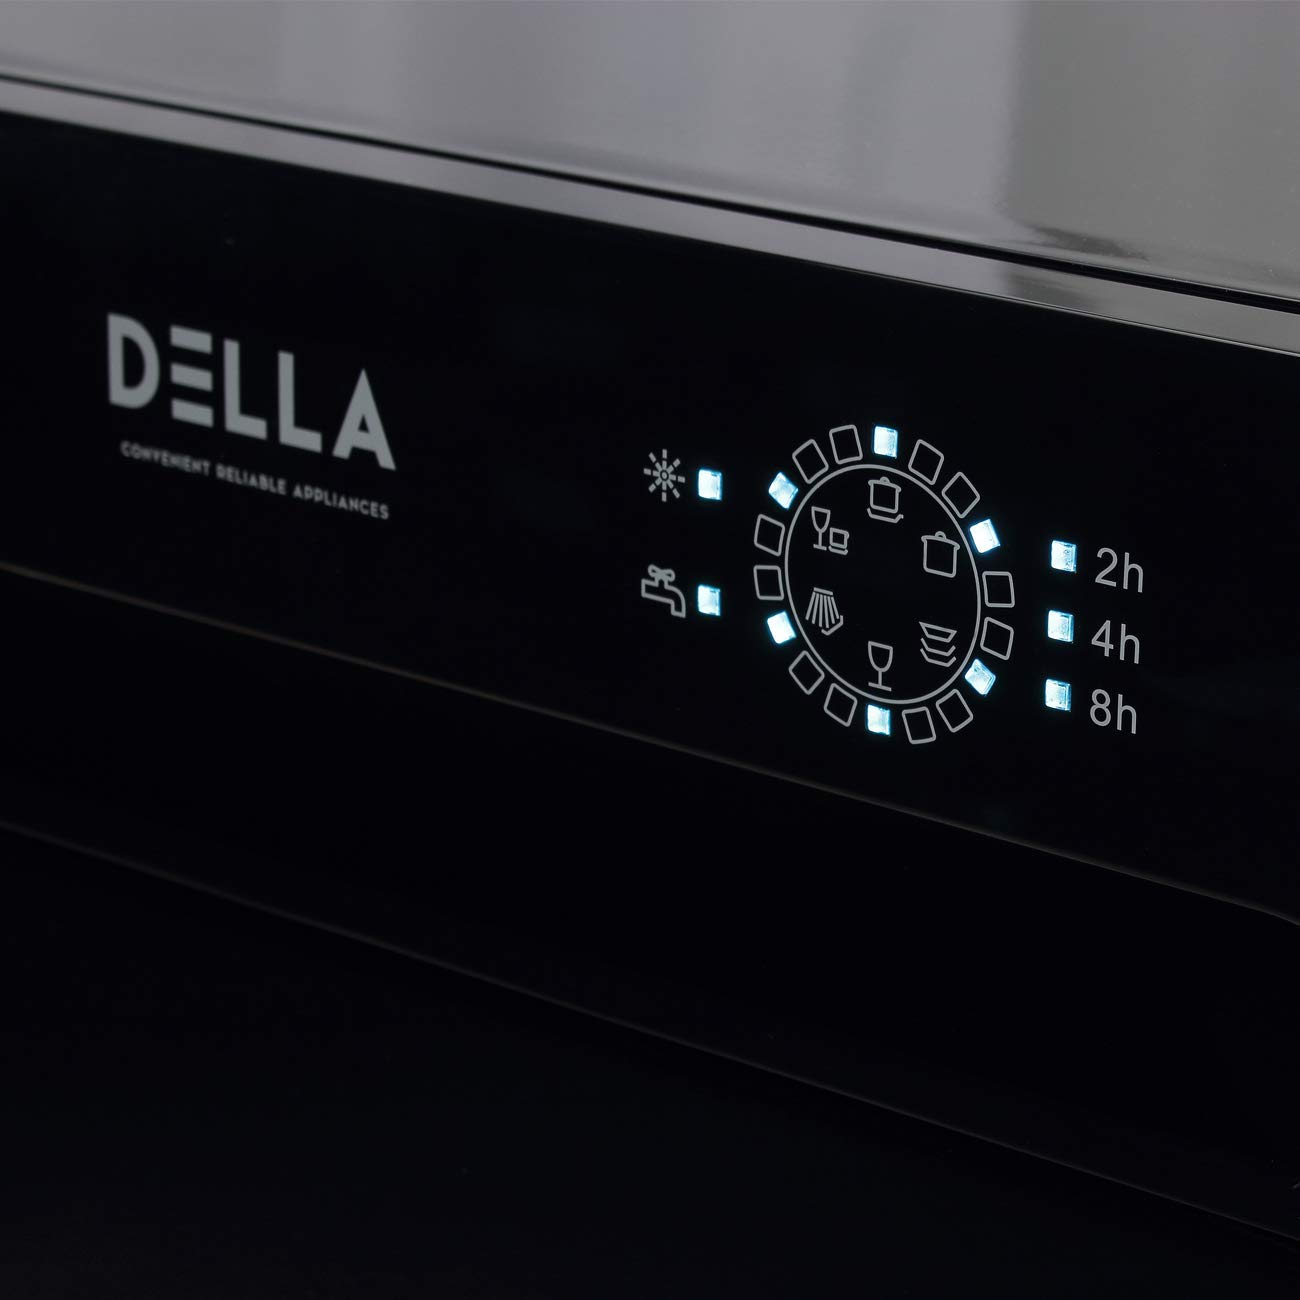 della portable dishwasher controls